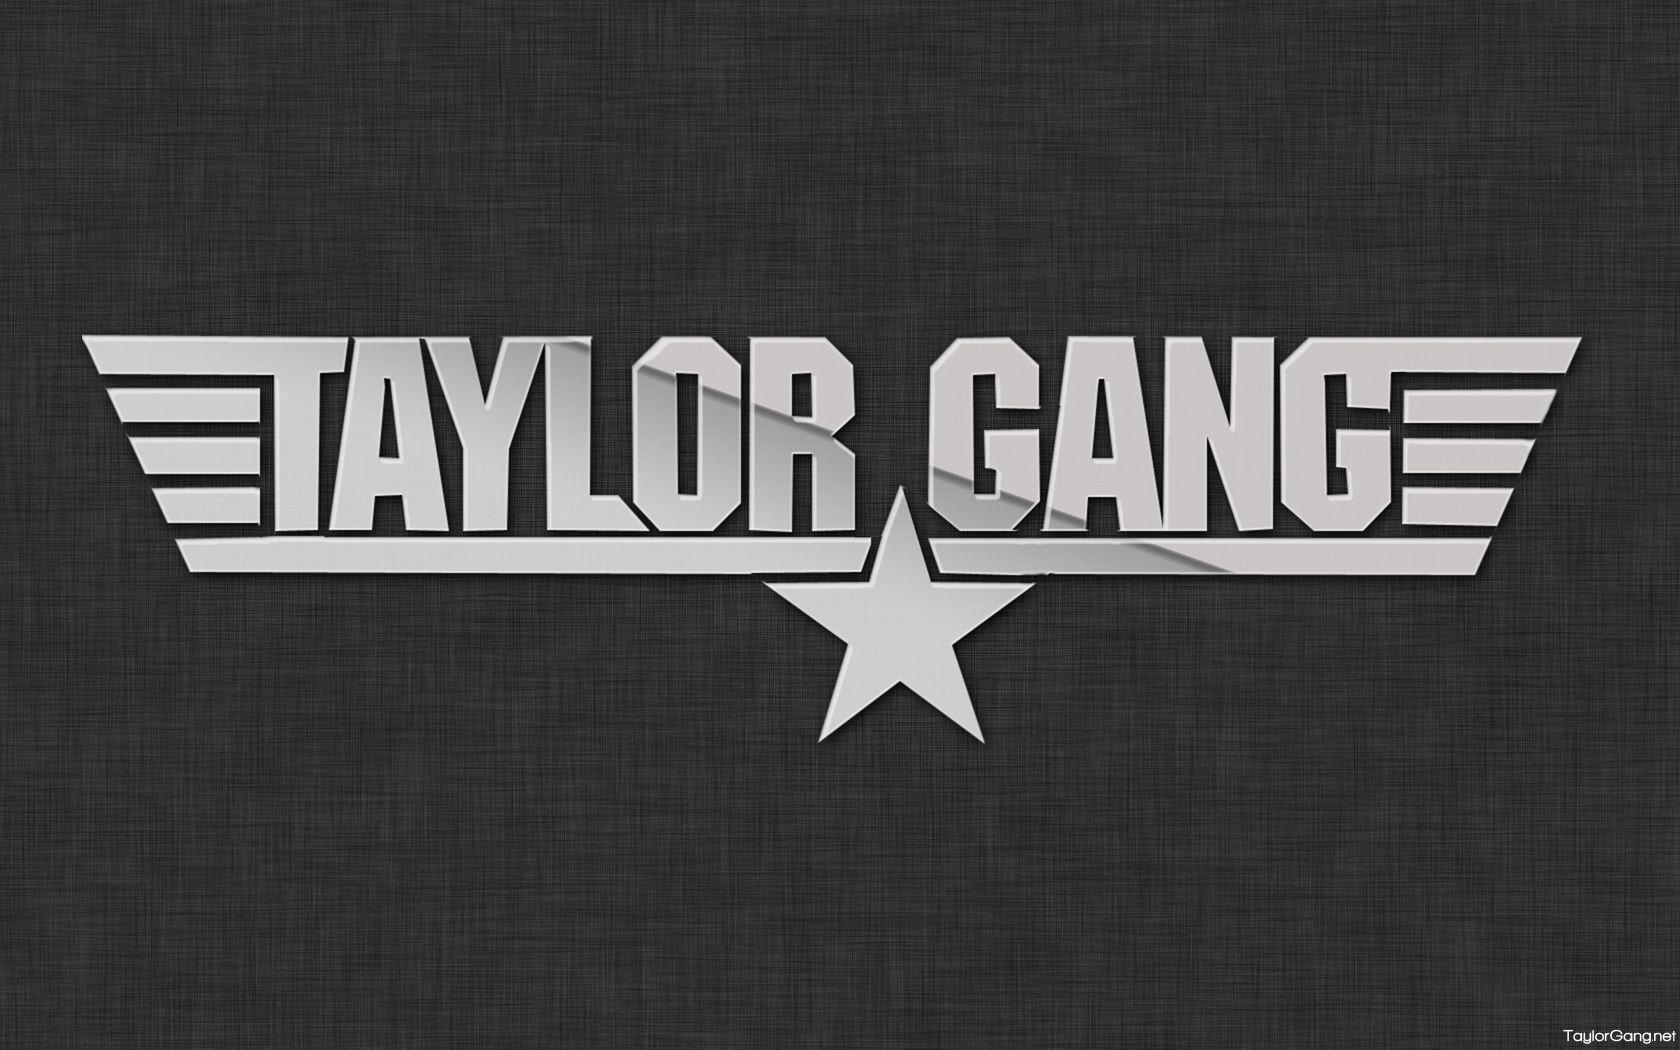 Taylor Gang Wallpaper – Free wallpaper download